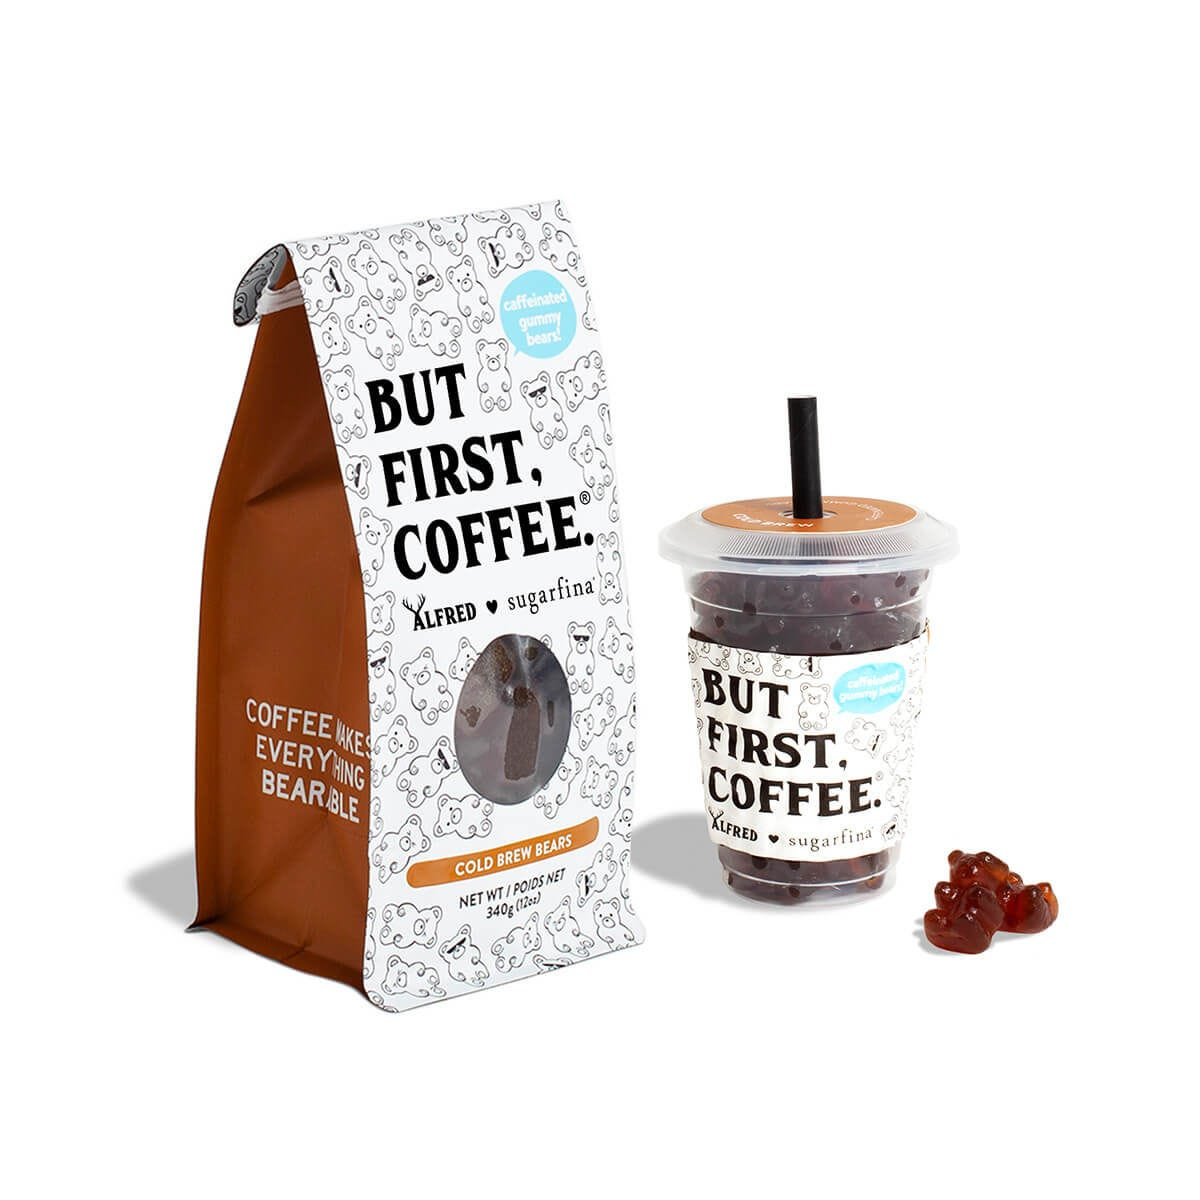 Cold Brew Bears - Refill Your Mini Cup Bundle